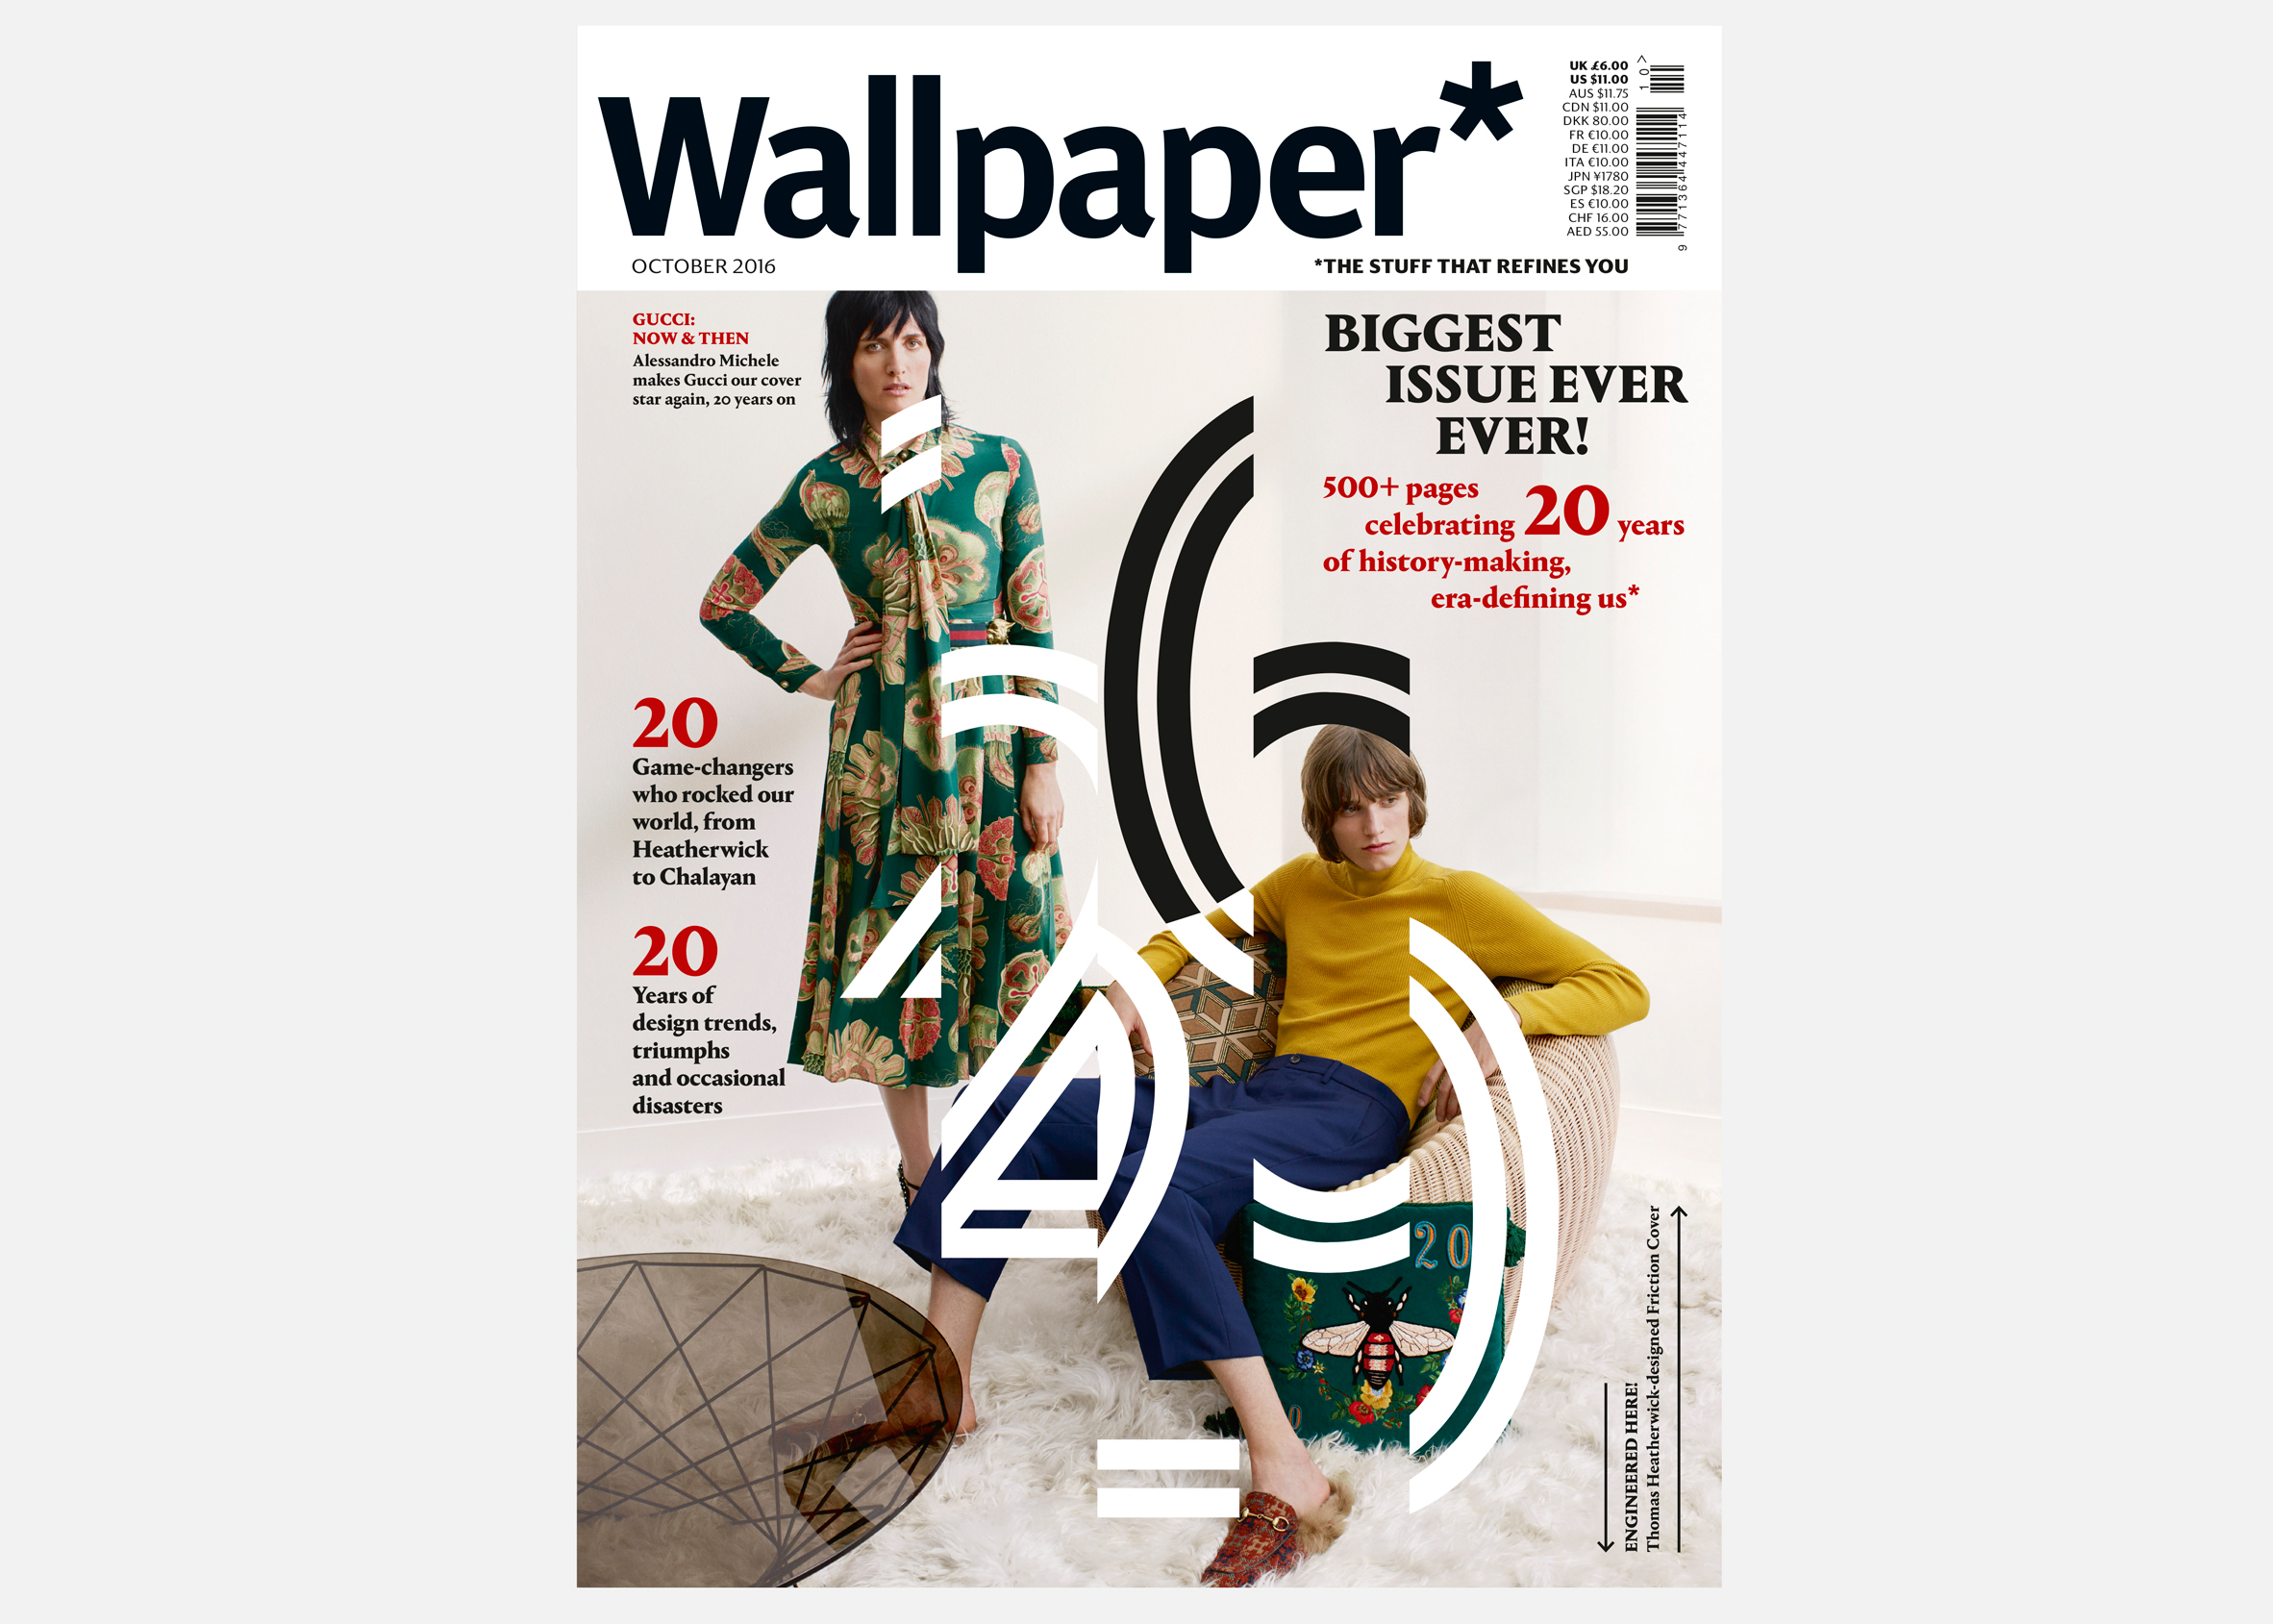 Heatherwick Designs Magazine Cover For Wallpapers 20th Anniversary